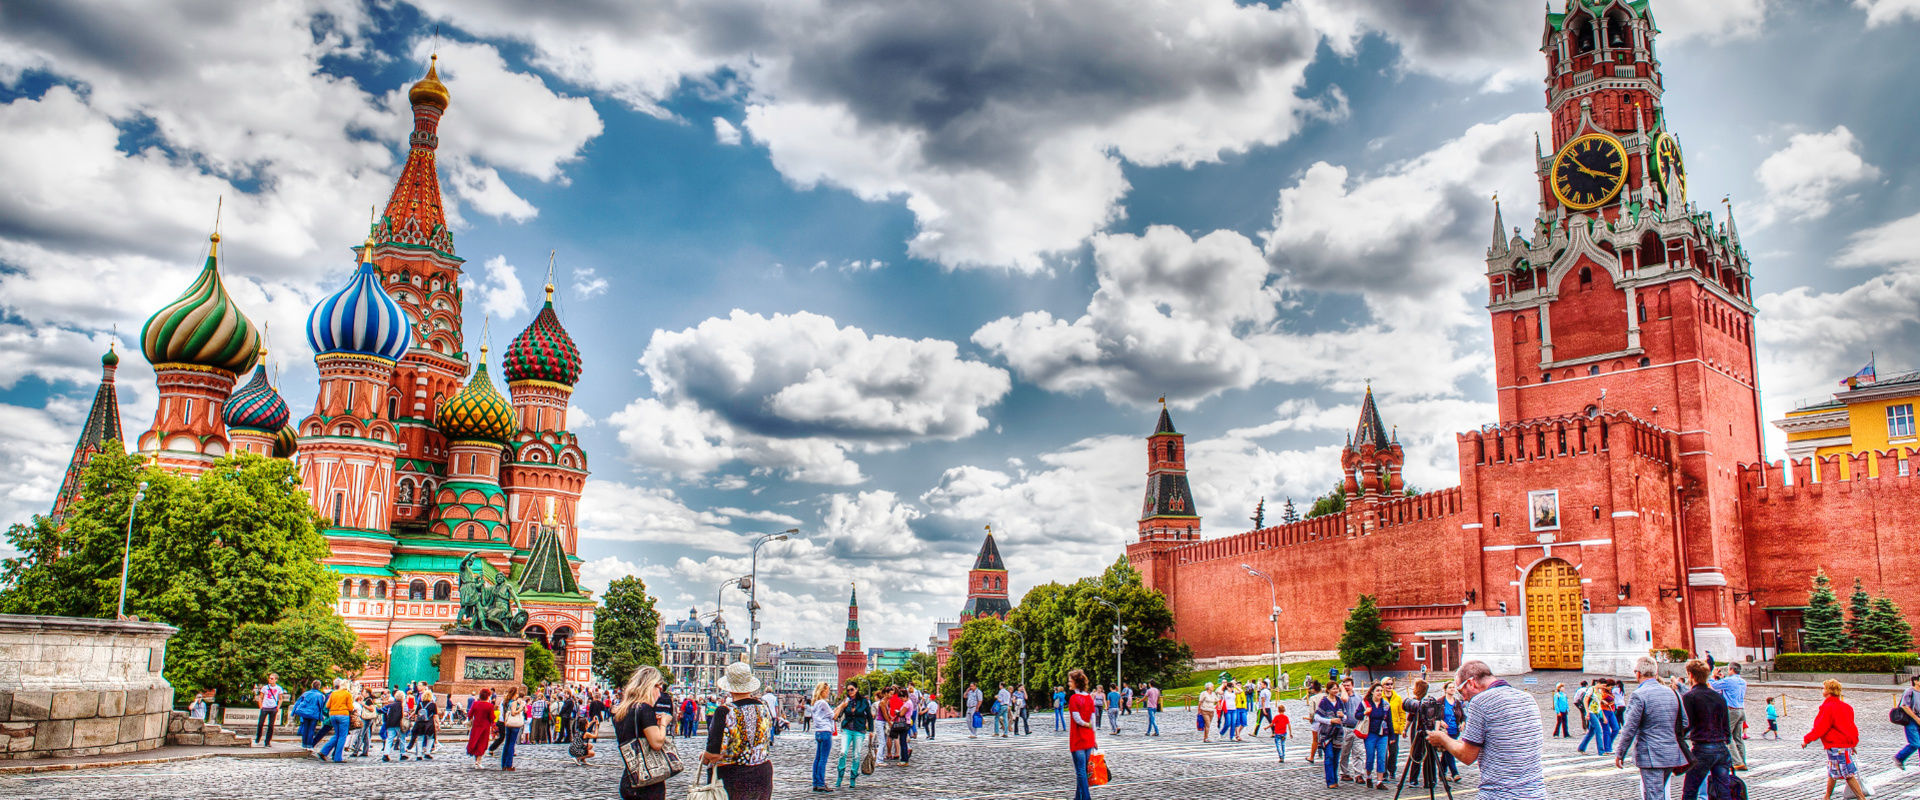 Red square Moscow cityscape 8309148721